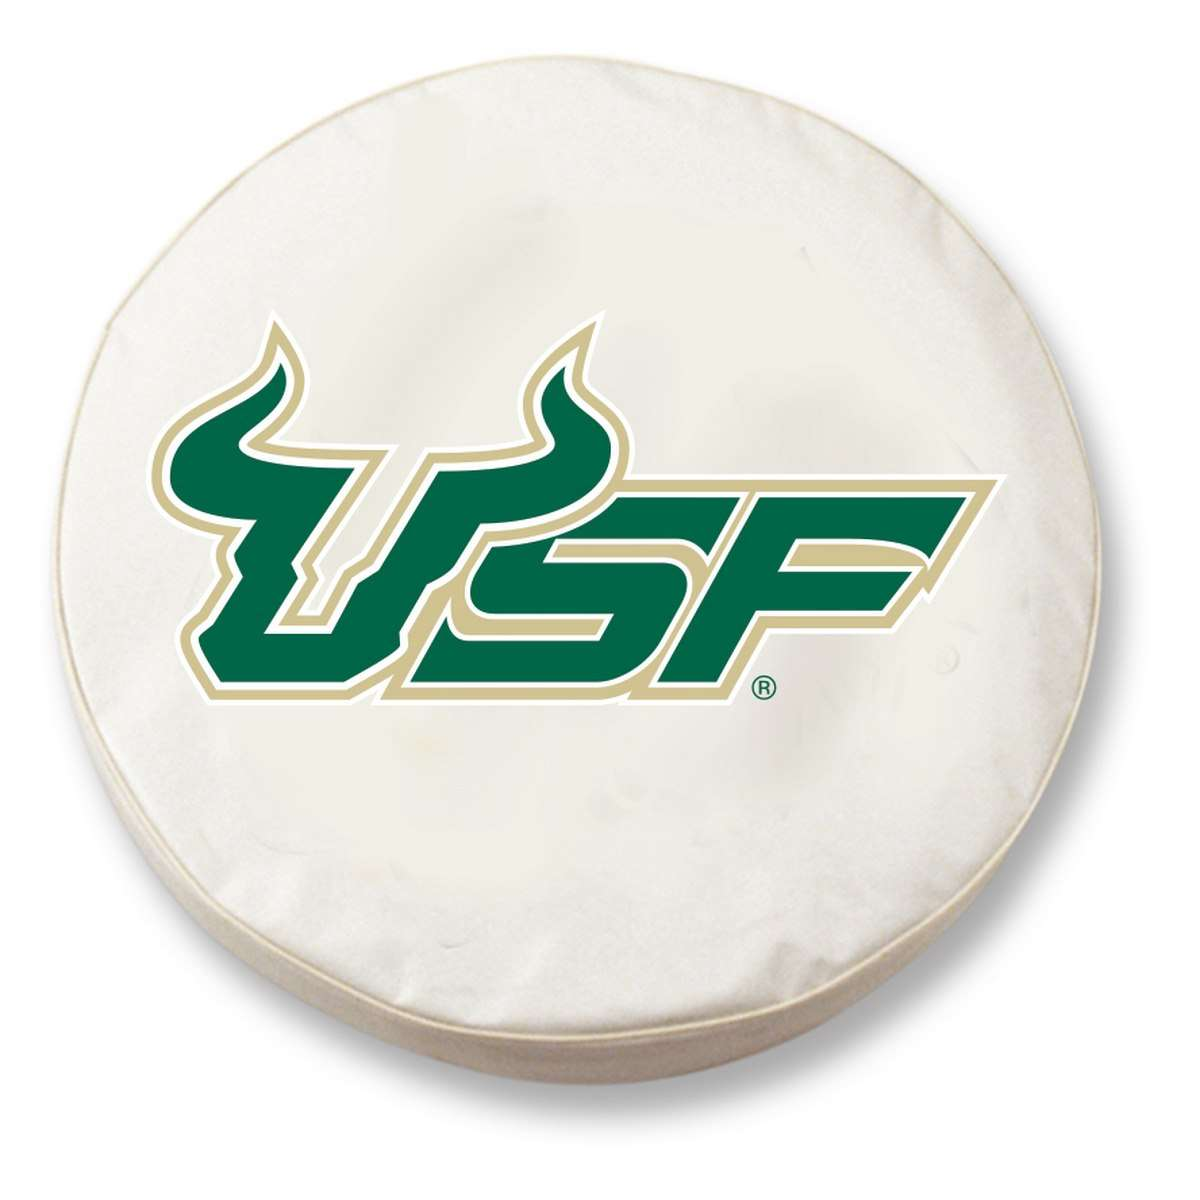 "30.75"" x 10"" White University of South Florida Vinyl Tire Cover"